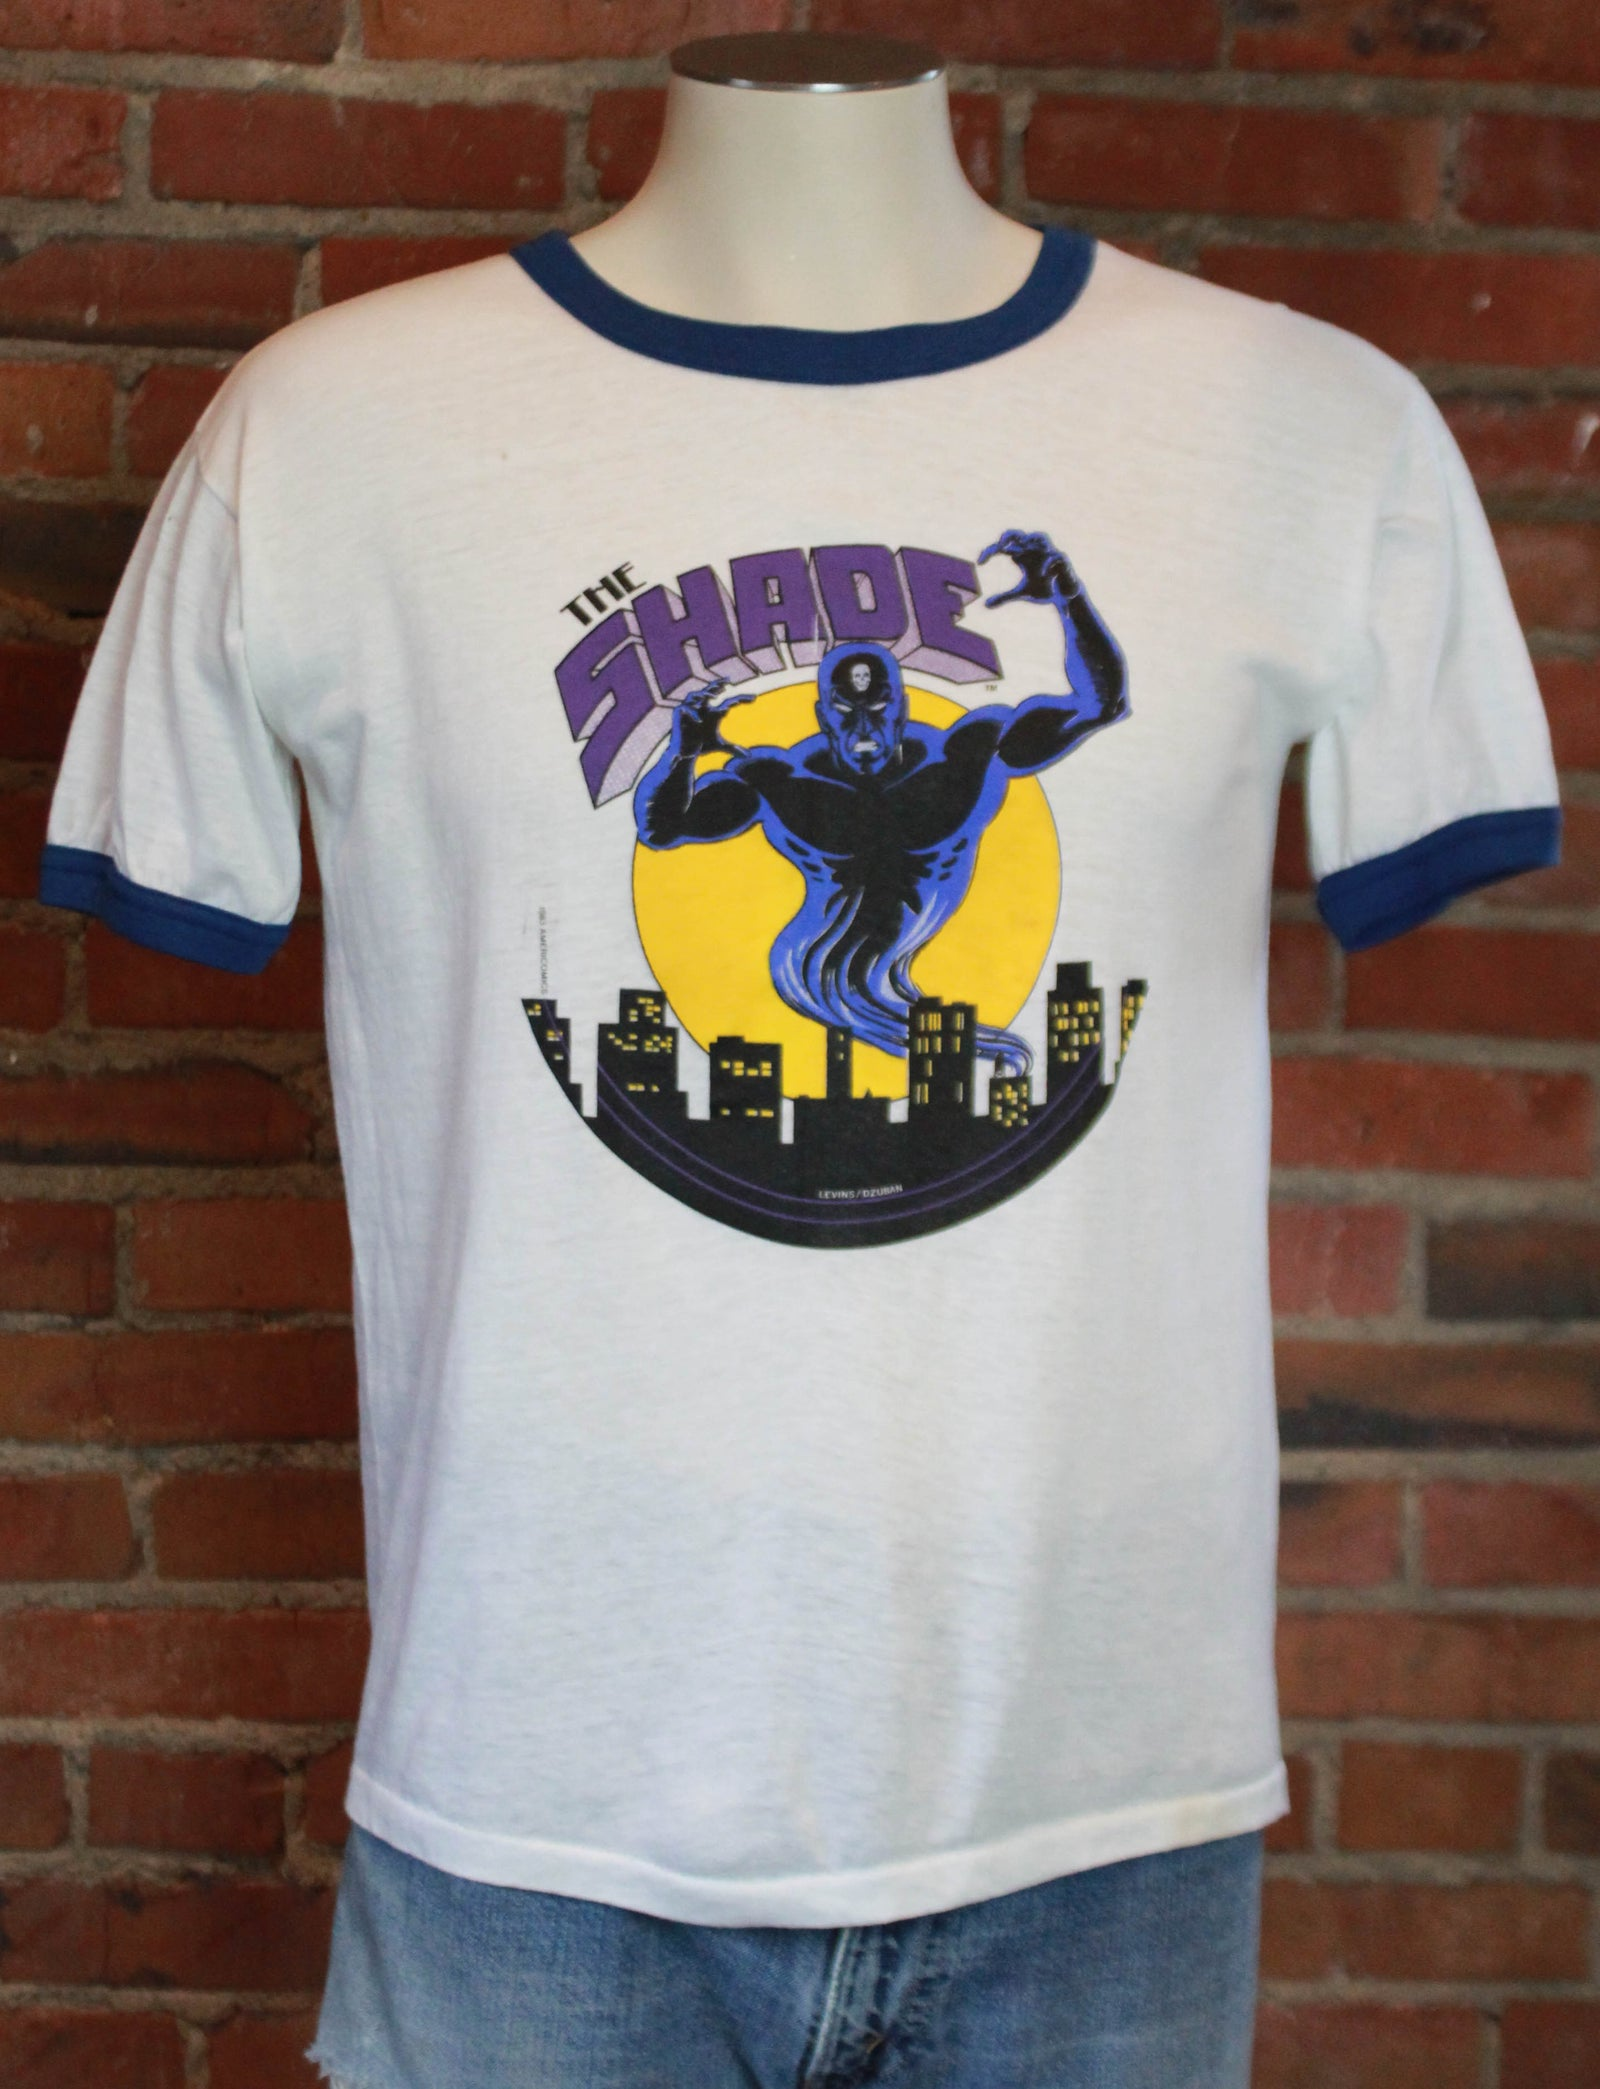 Vintage The Shade Comic Book Graphic Ringer Tee 1983 Unisex Medium